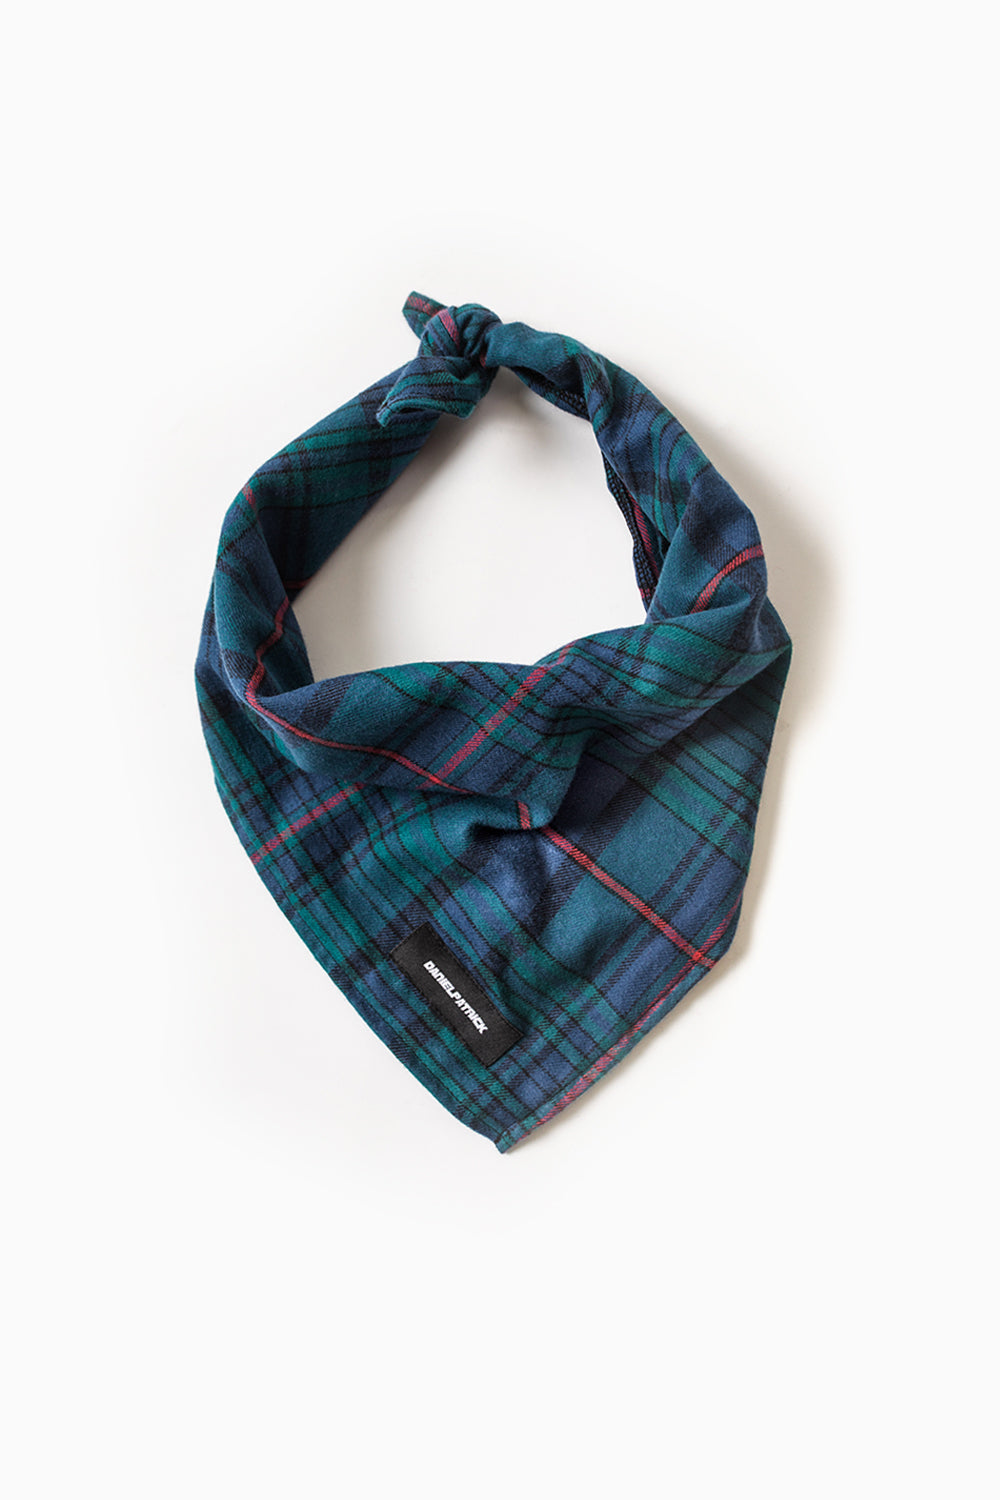 flannel bandana / blue green plaid